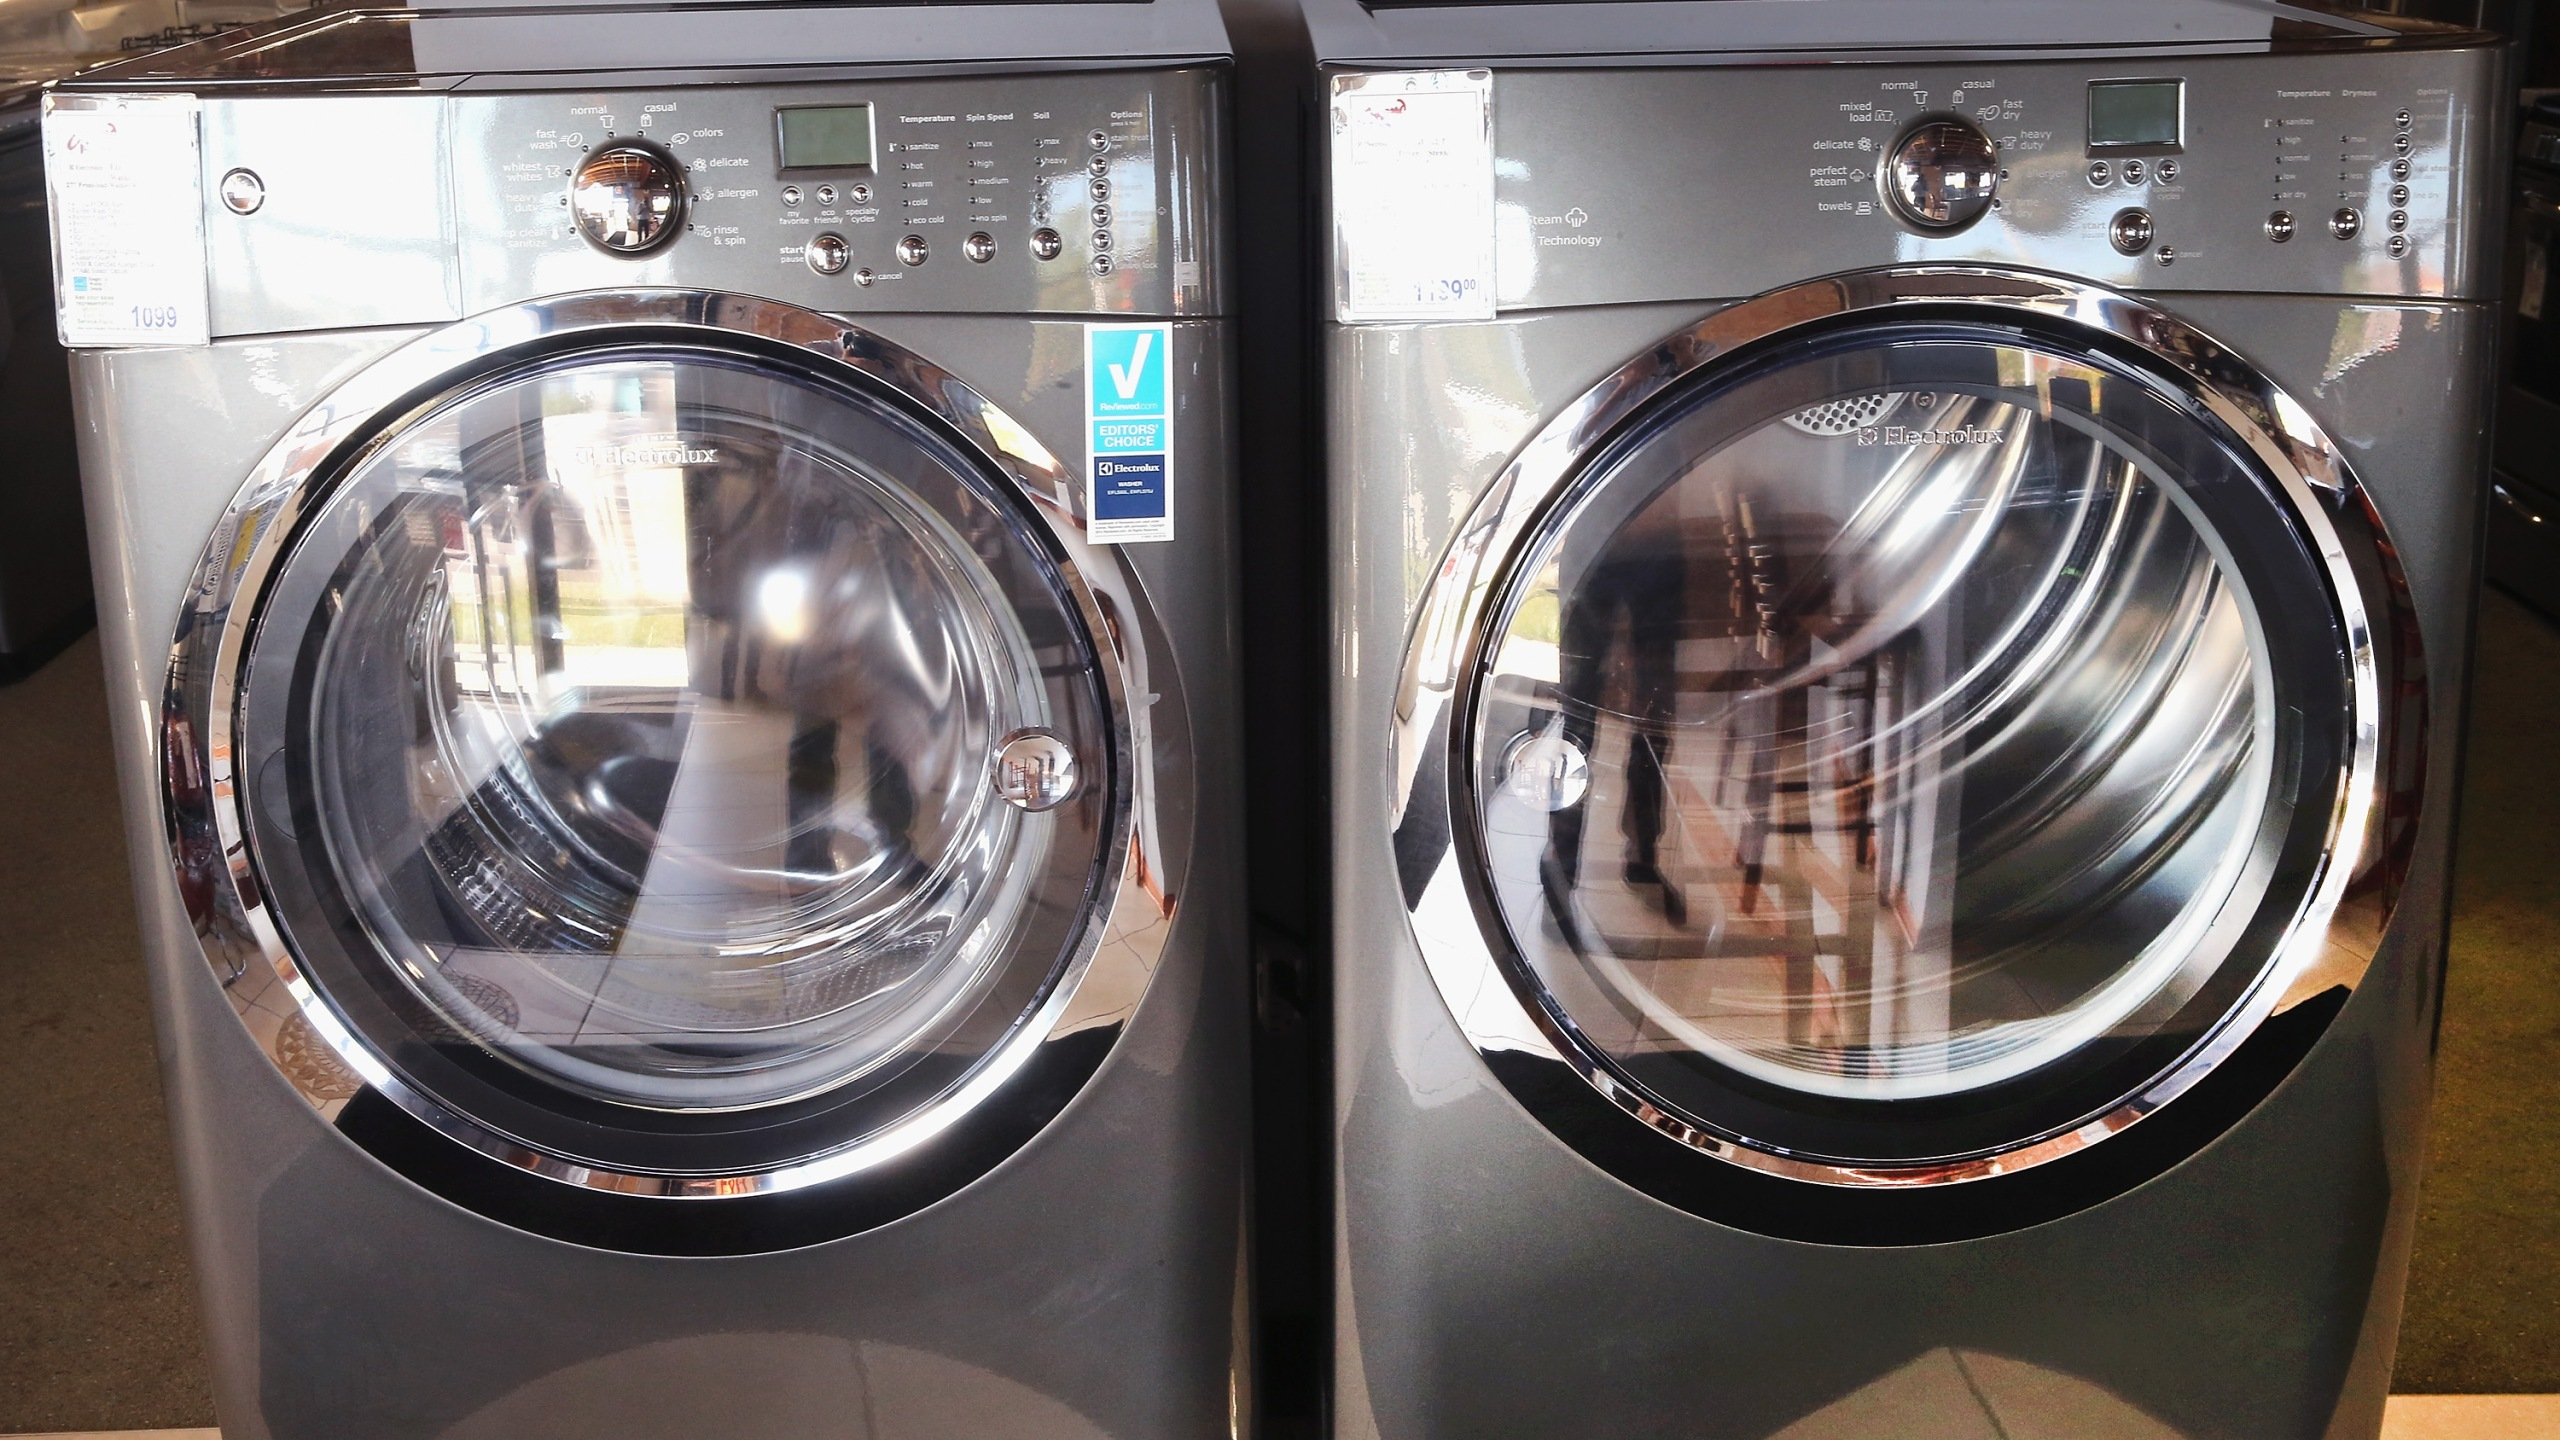 This file photo shows a washer and dryer at an appliance store on Sept. 8, 2014, in Chicago, Illinois. (Credit: Scott Olson/Getty Images)